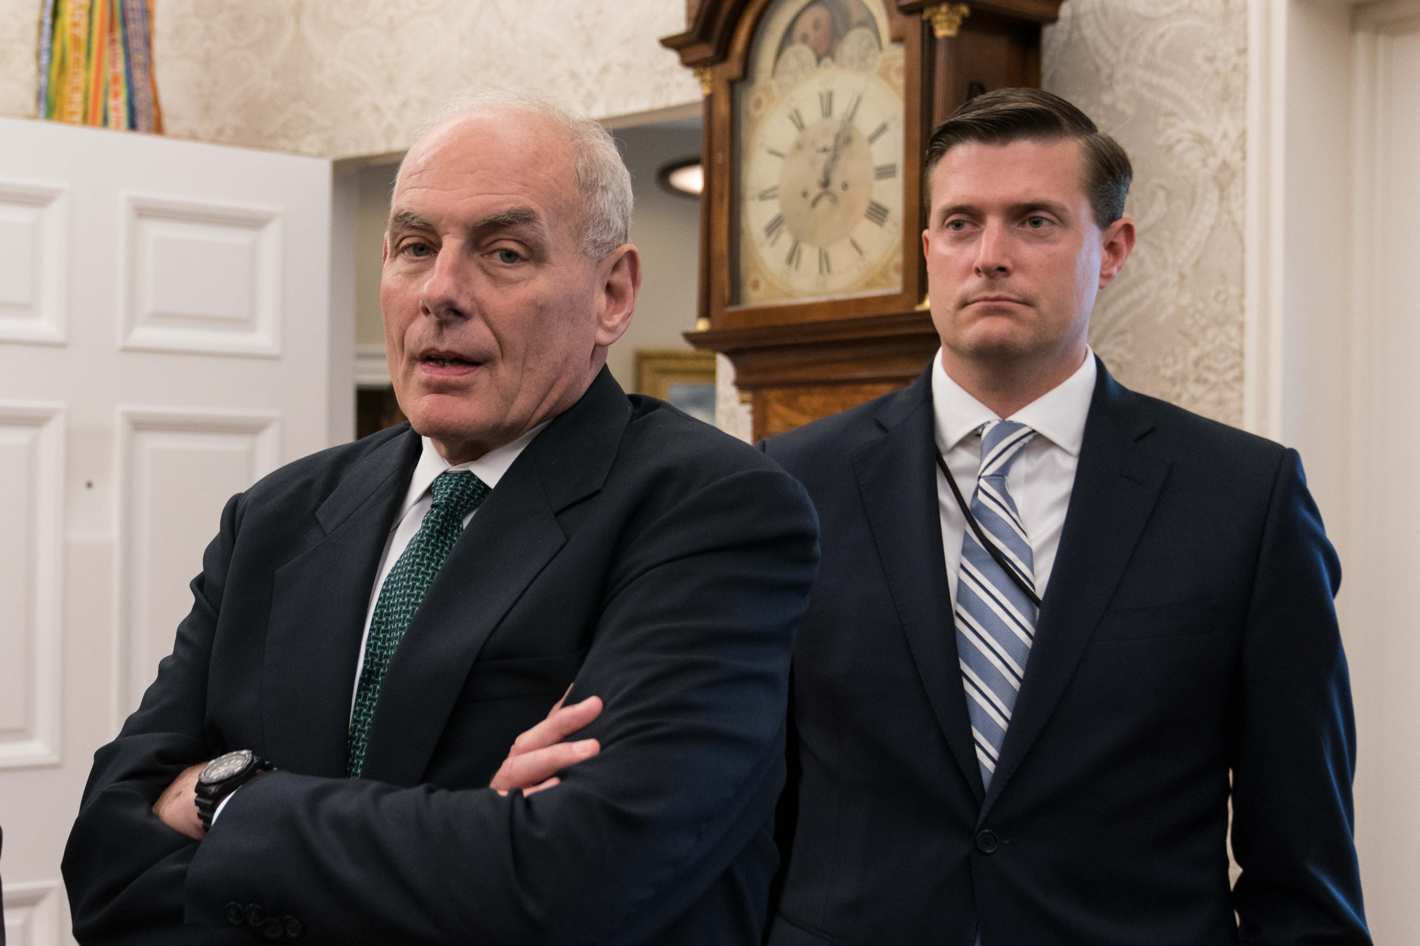 John Kelly's mission was to end the Trump drama. Now he's at the center of it. https://t.co/jMyLboGa5A https://t.co/C0GgXBU0Rz